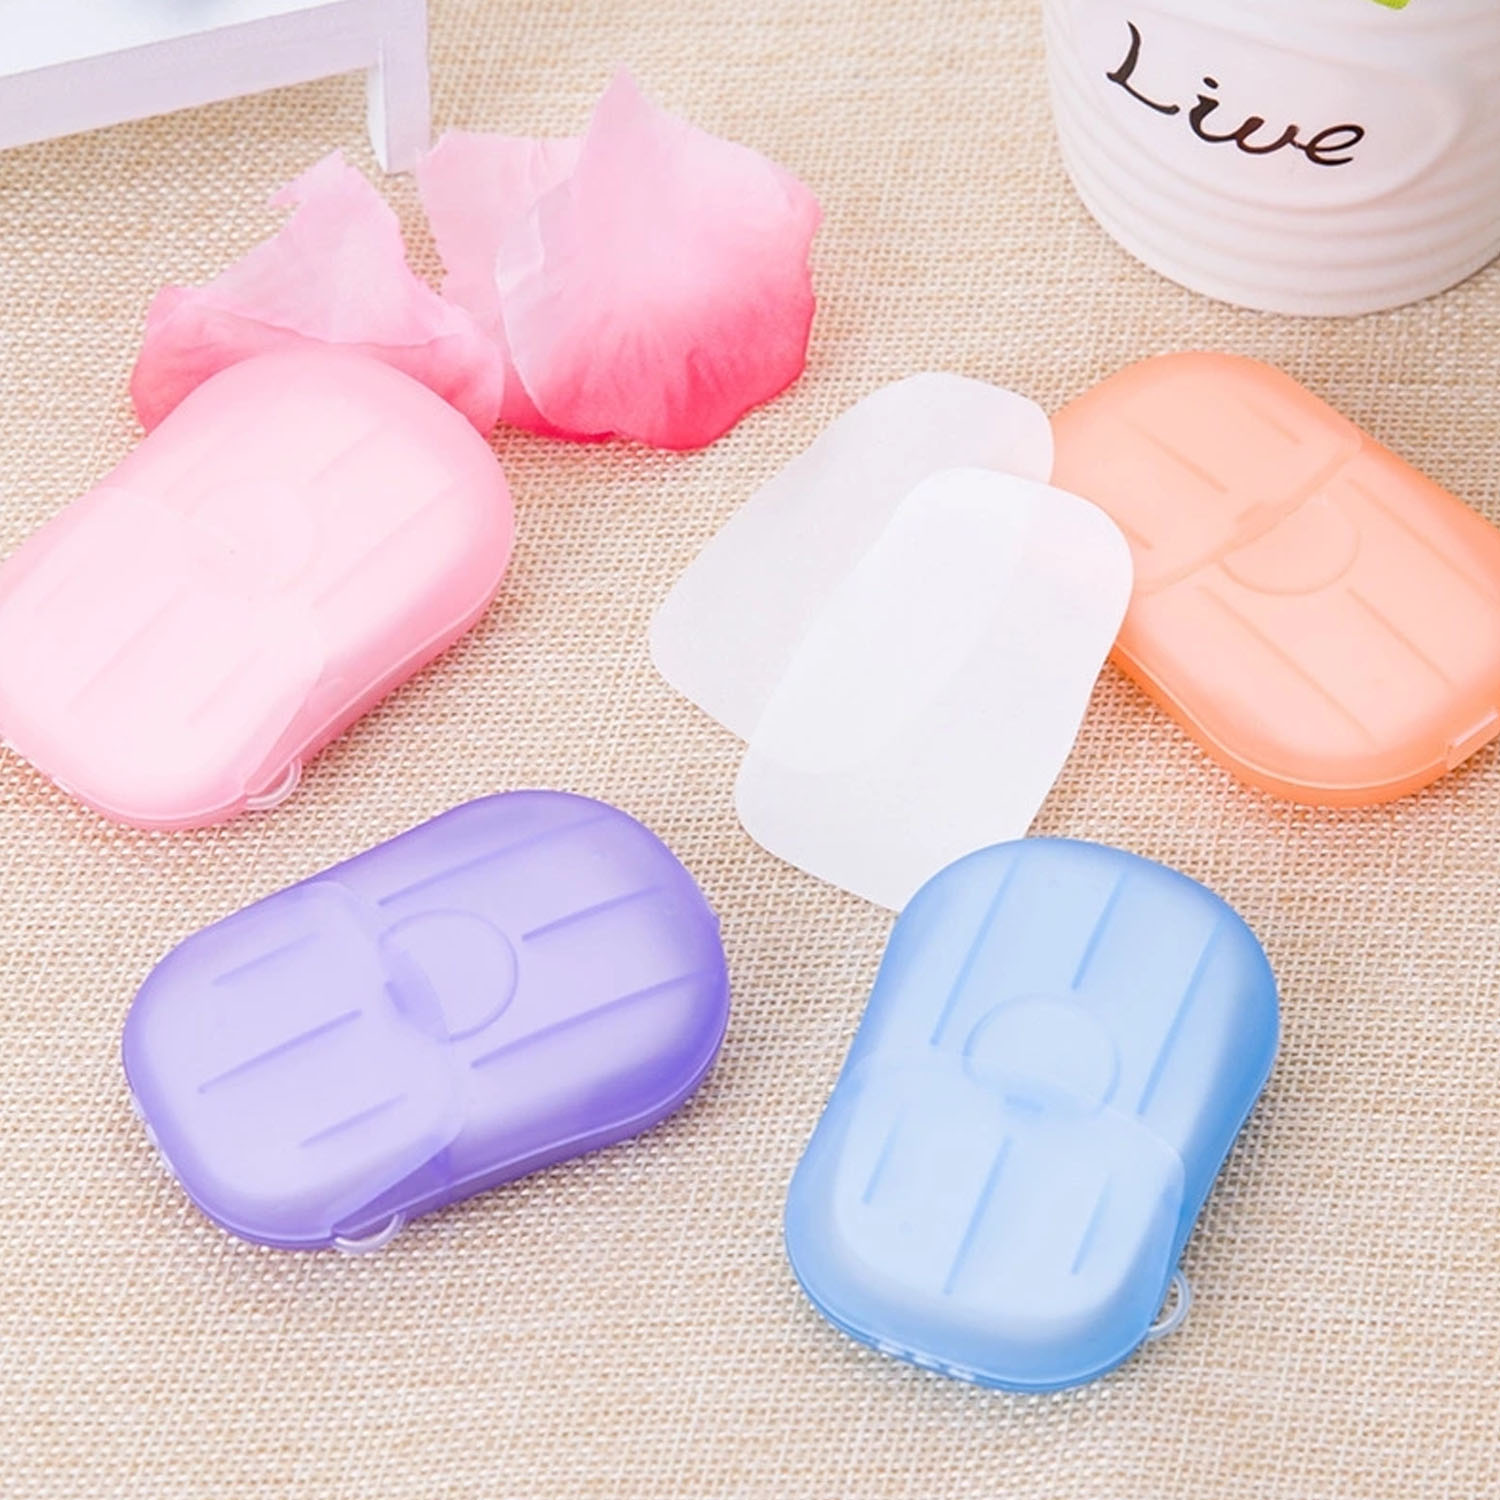 80PCS Portable Disposable Paper Soaps Sheets With Storage Box For Travel Camping Business Trip Outdoor Hand Washing Random Color